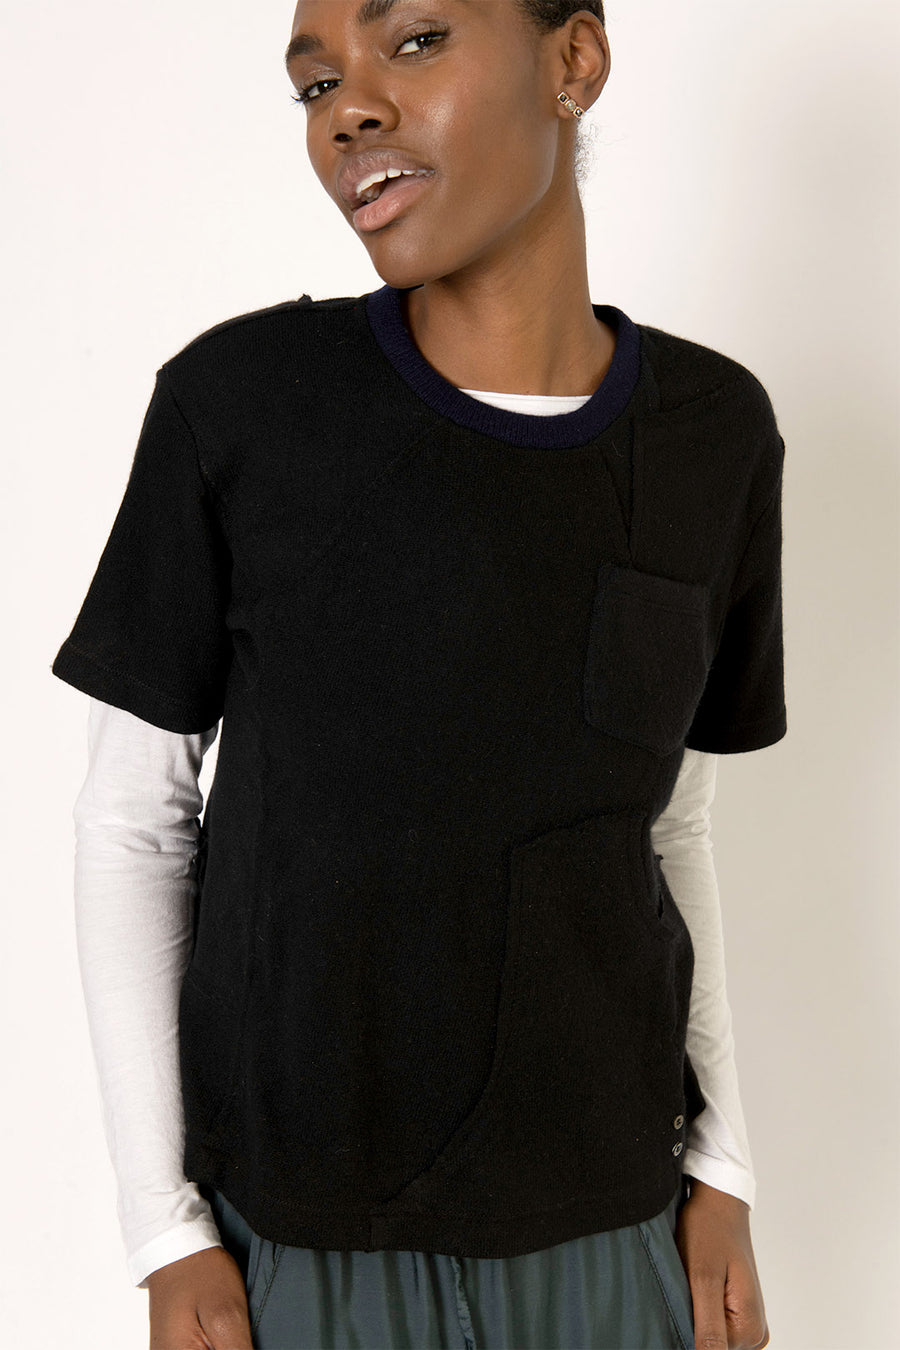 Mulholland Upcycled Cashmere Tee Shirt Black